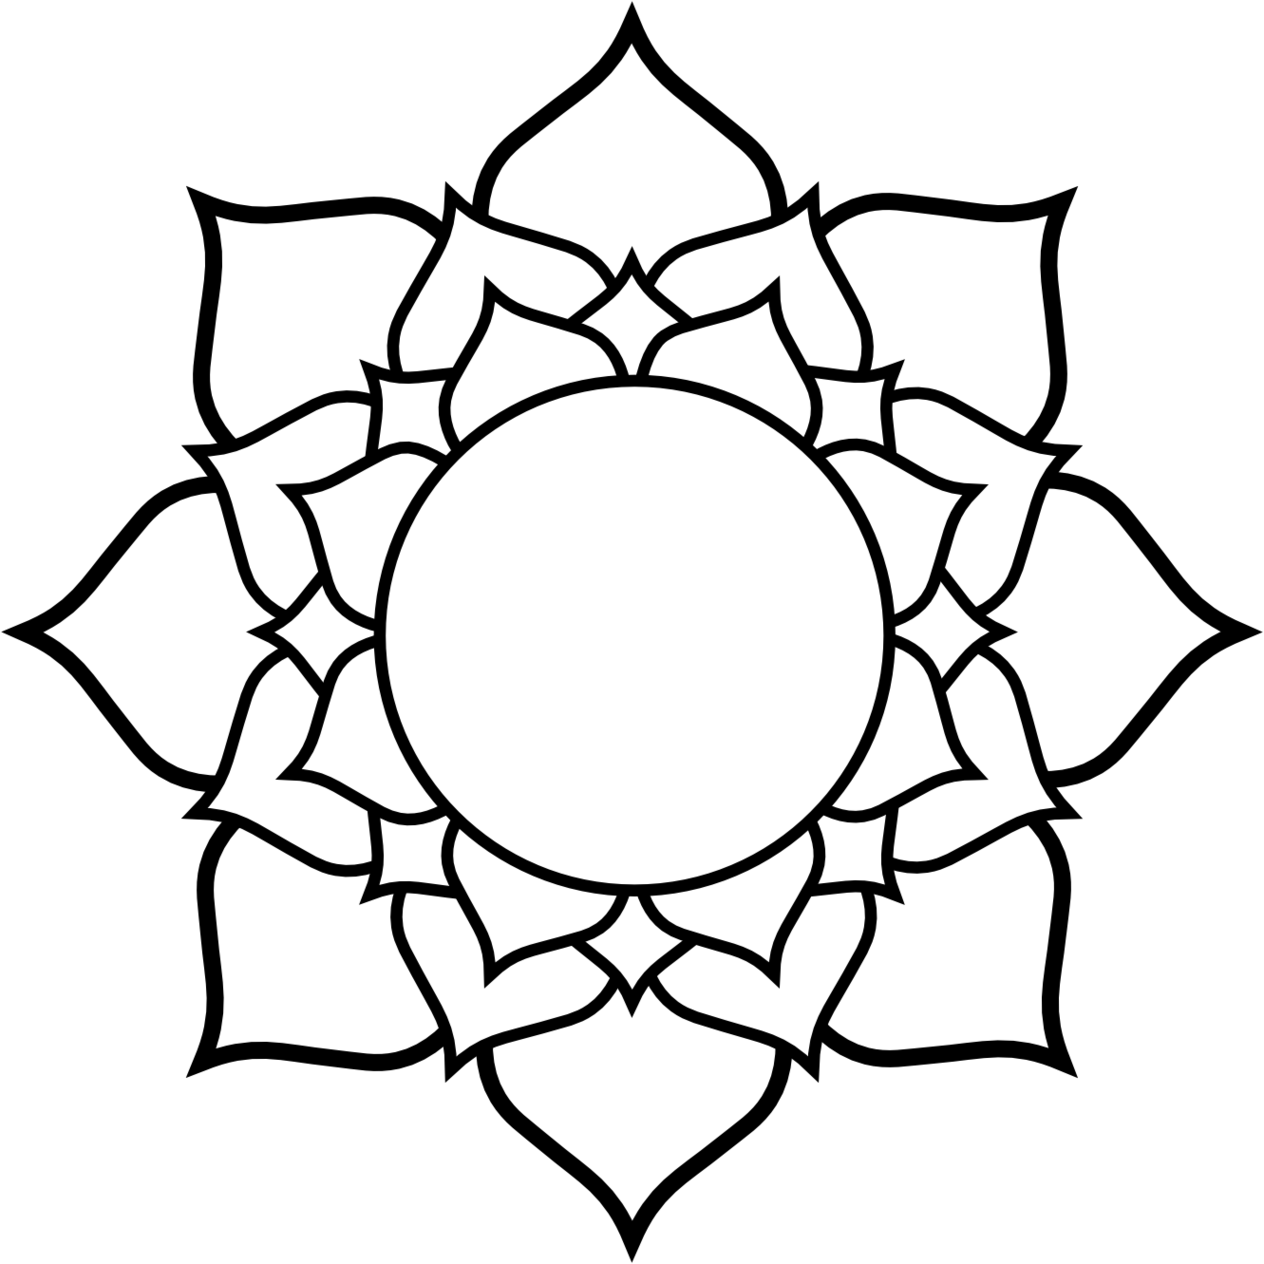 Lotus flower line drawing free download best lotus flower line 1264x1264 lotus clipart line drawing mightylinksfo